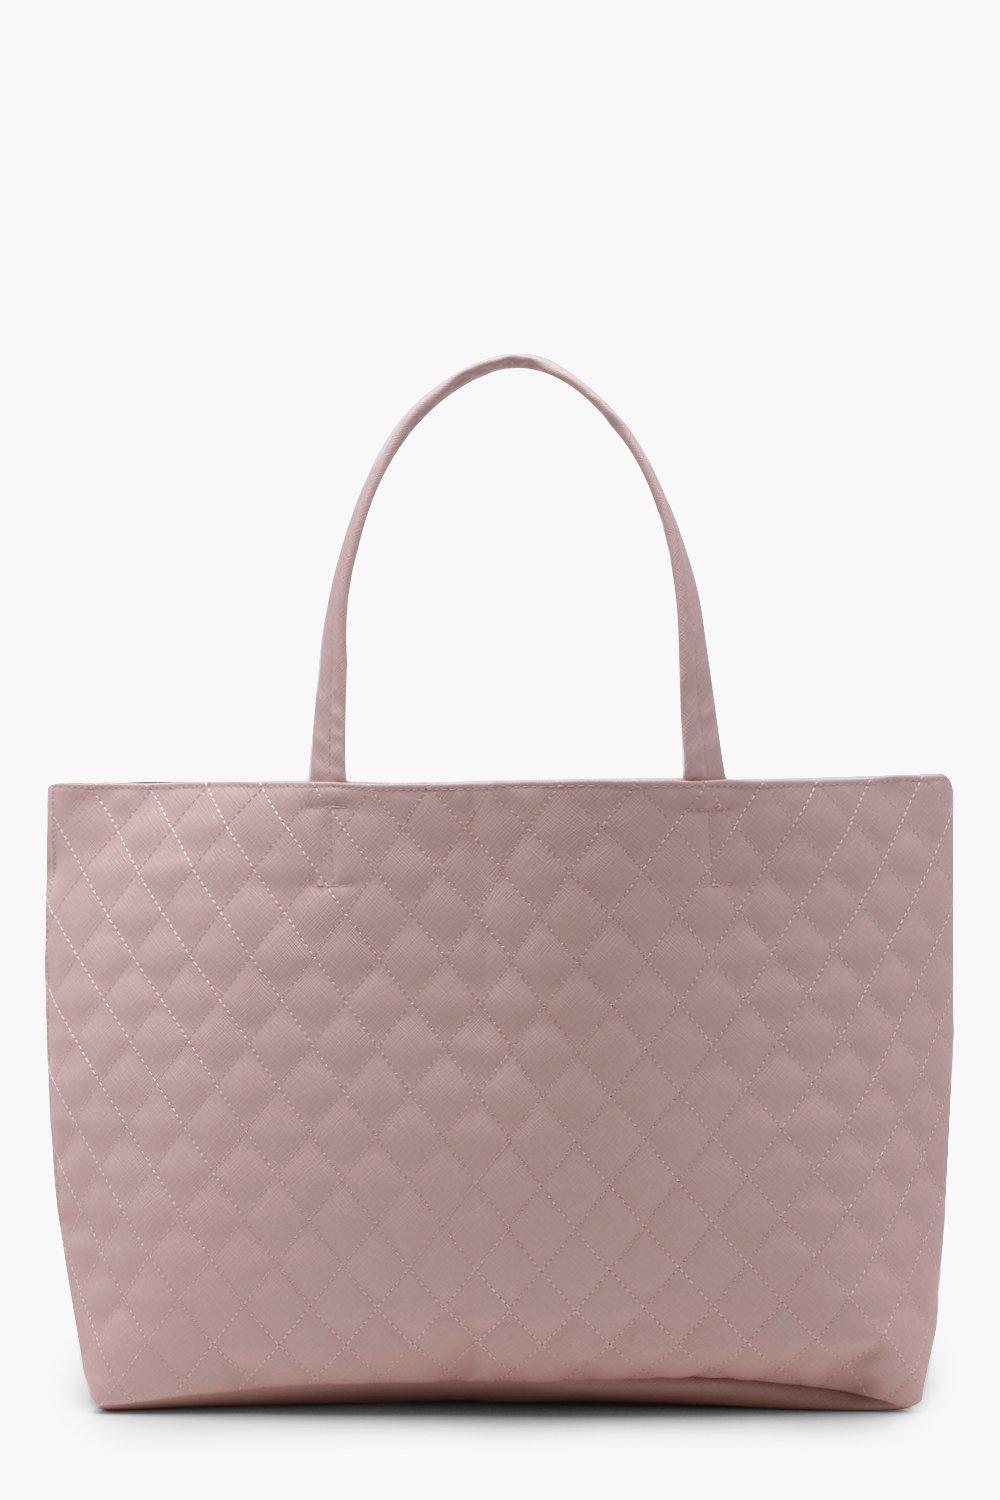 Quilted Shopper Bag - blush - Alicia Quilted Shopp